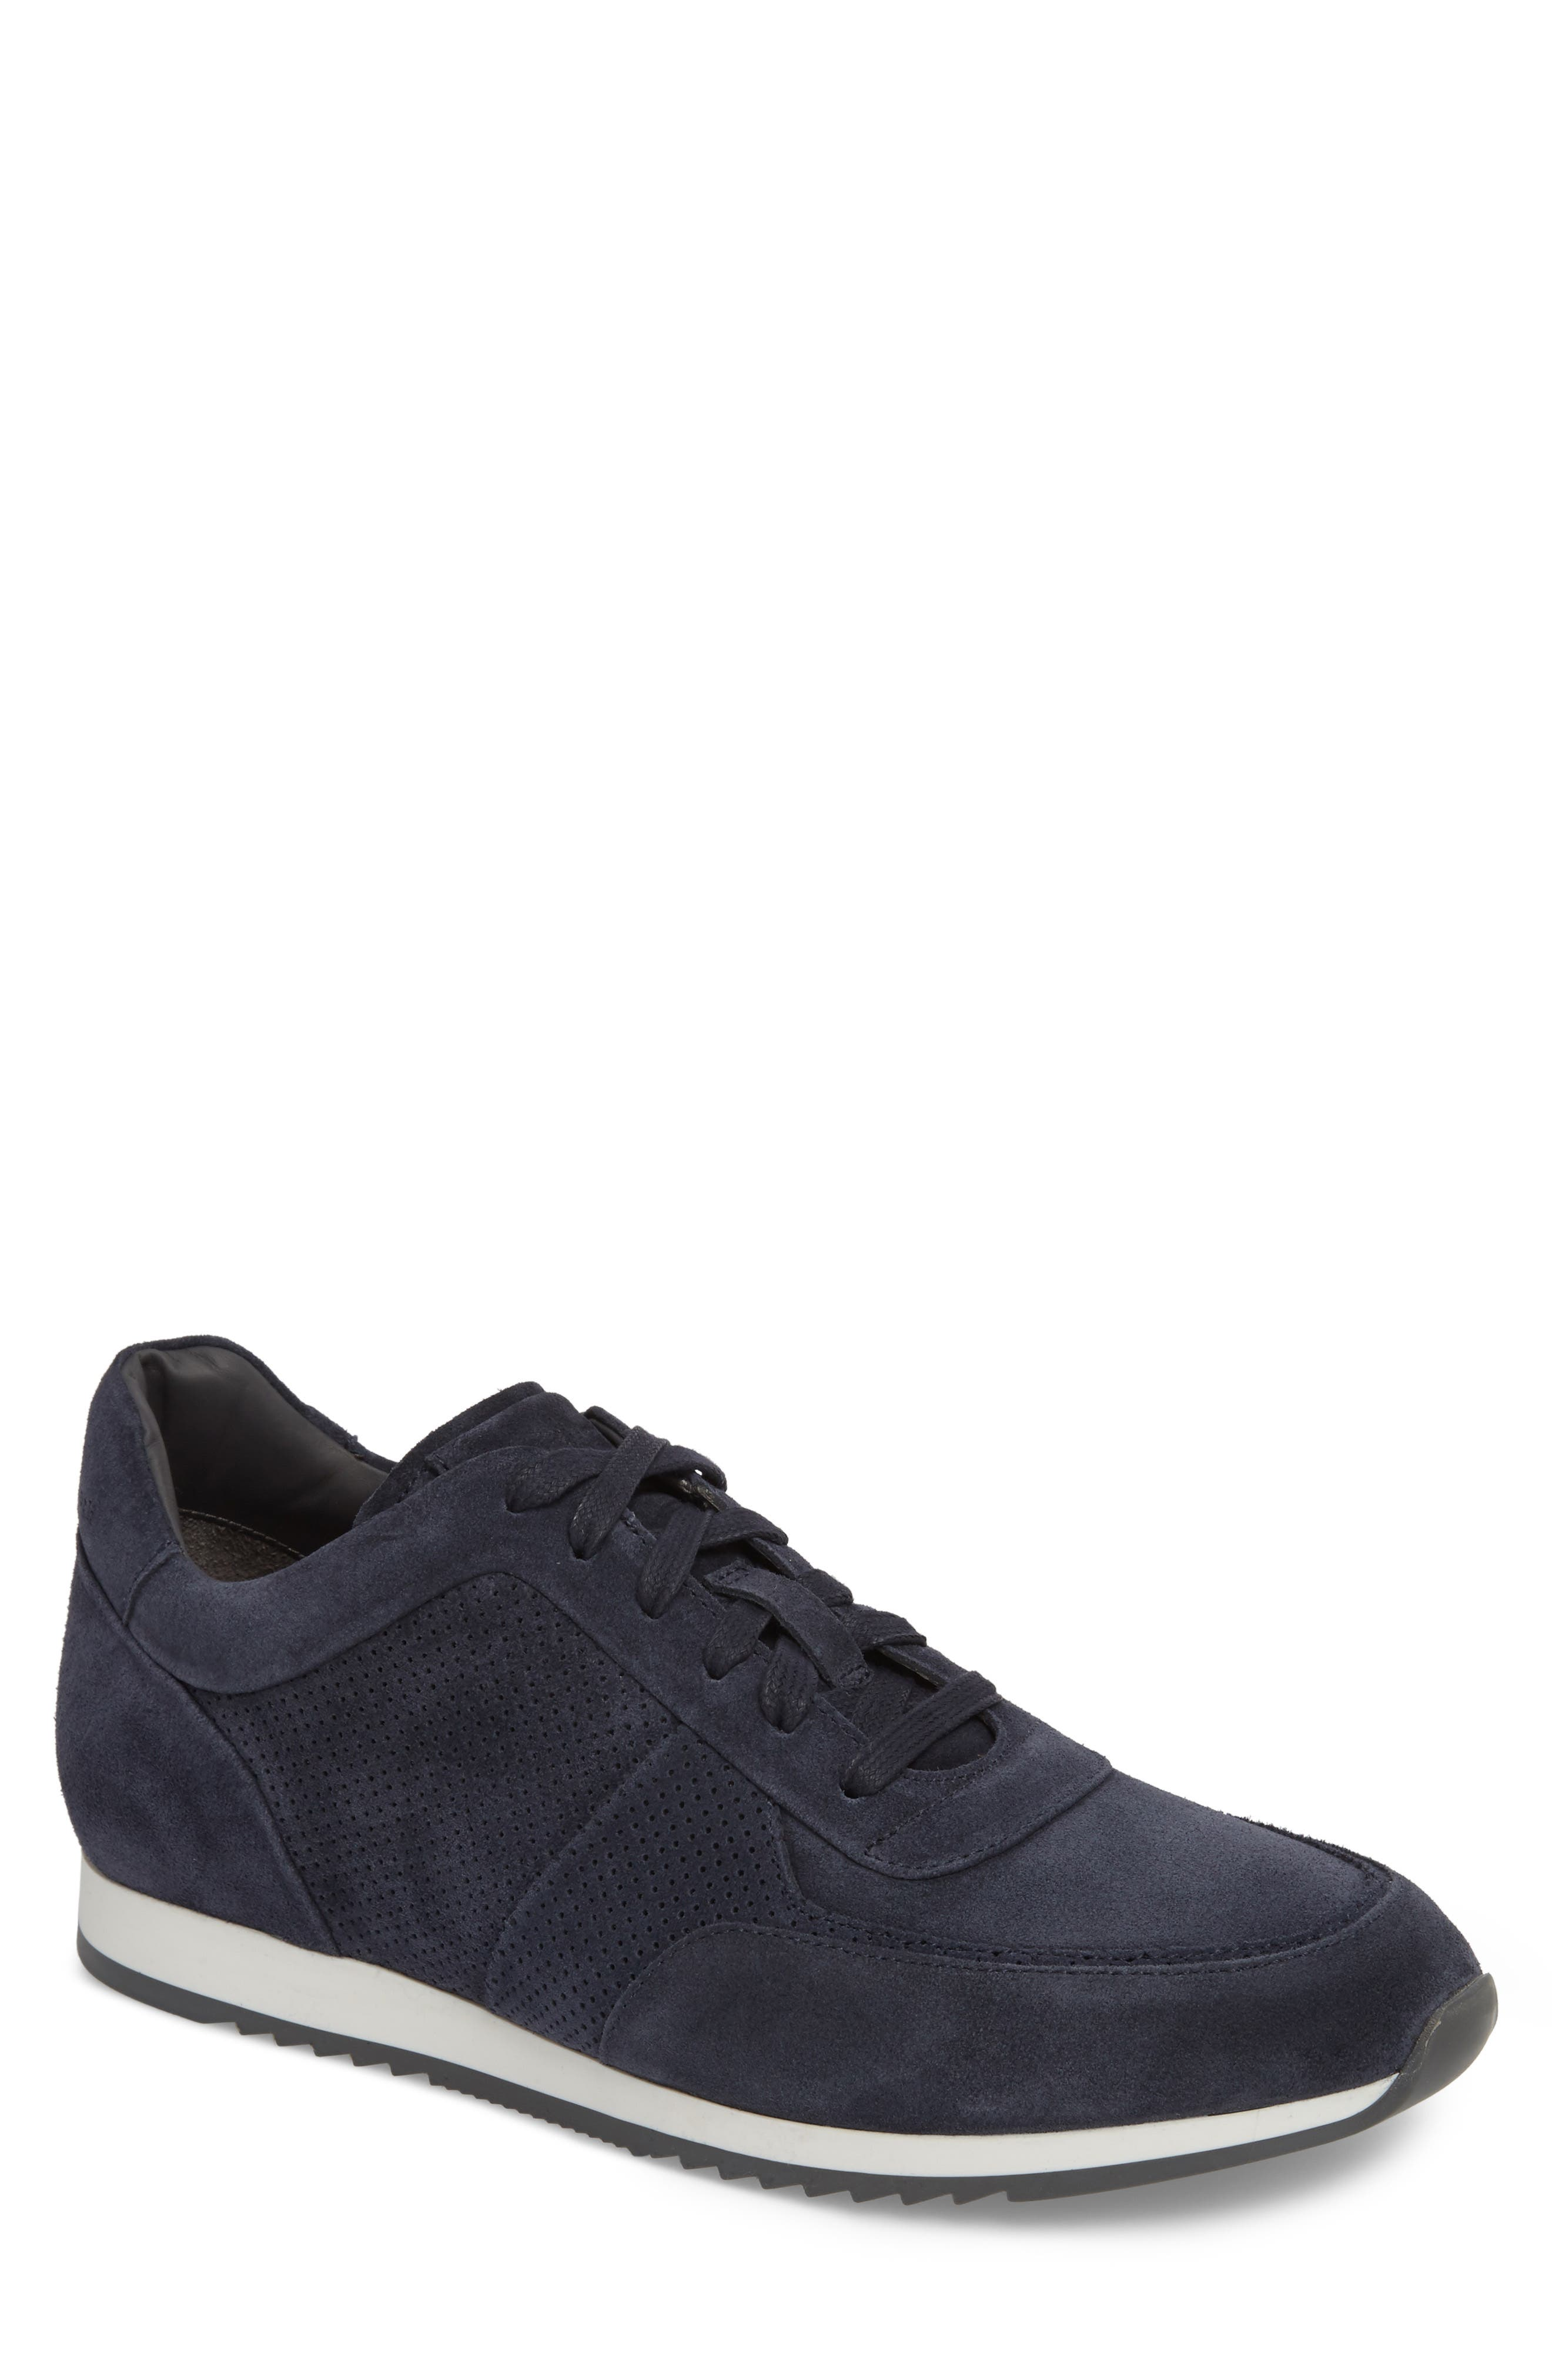 Fordham Low Top Sneaker,                             Main thumbnail 1, color,                             Space Blue Suede